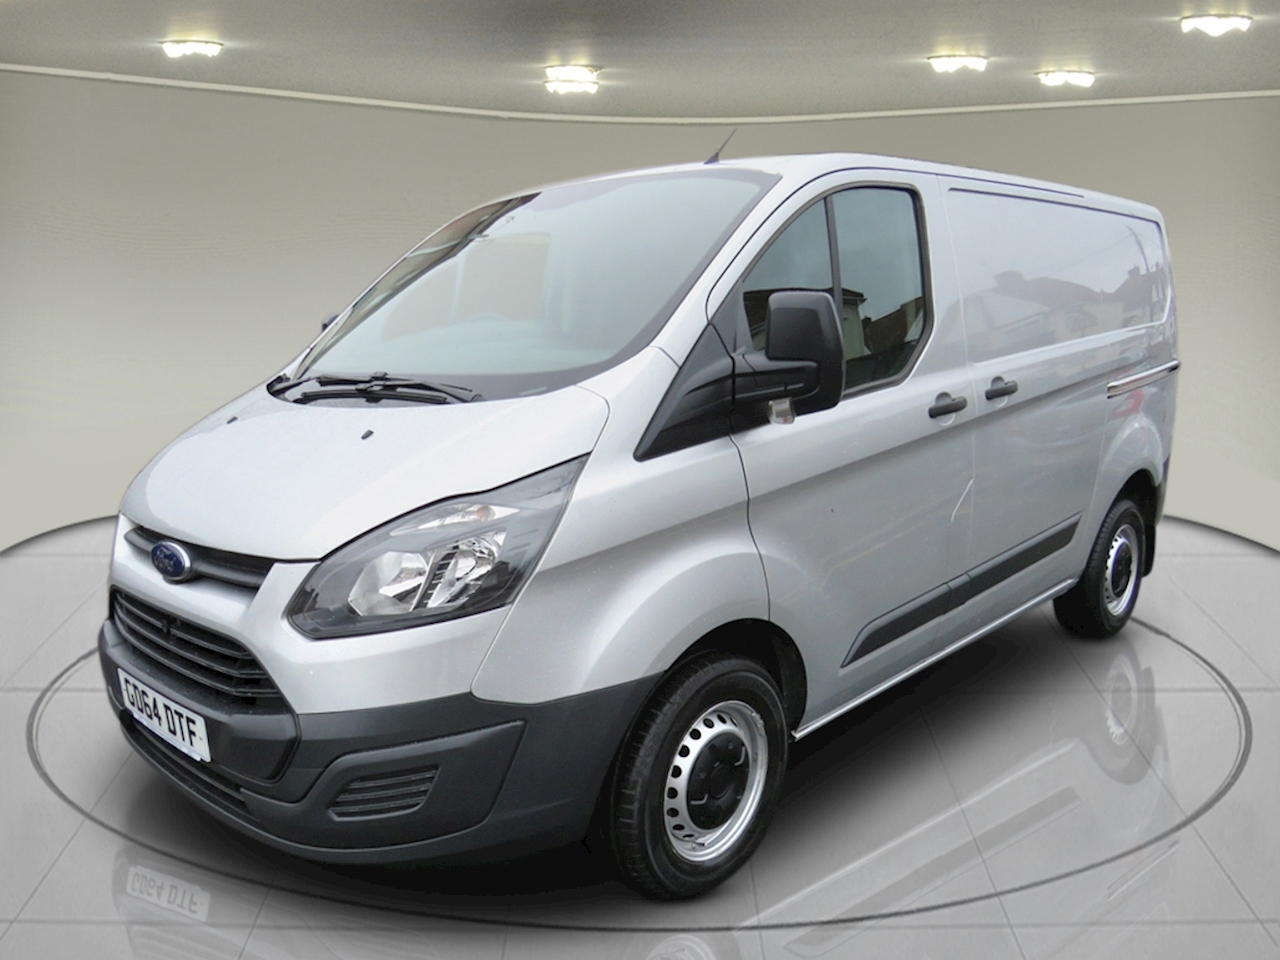 Ford 2.2 TDCi 270 ECOnetic Panel Van 5dr Diesel Manual L1 H1 (162 g/km, 98 bhp)